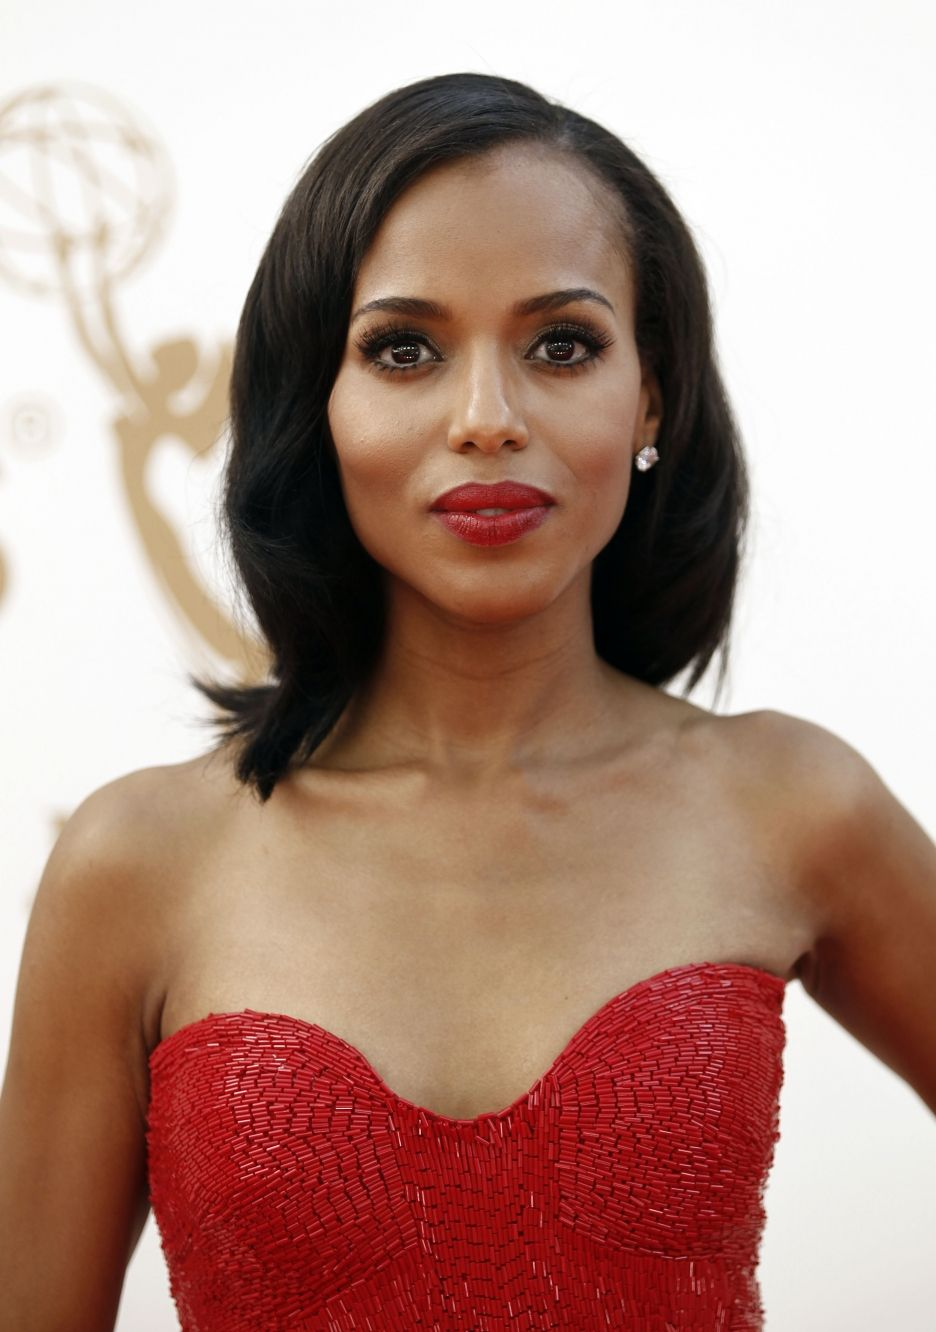 kerry washington site